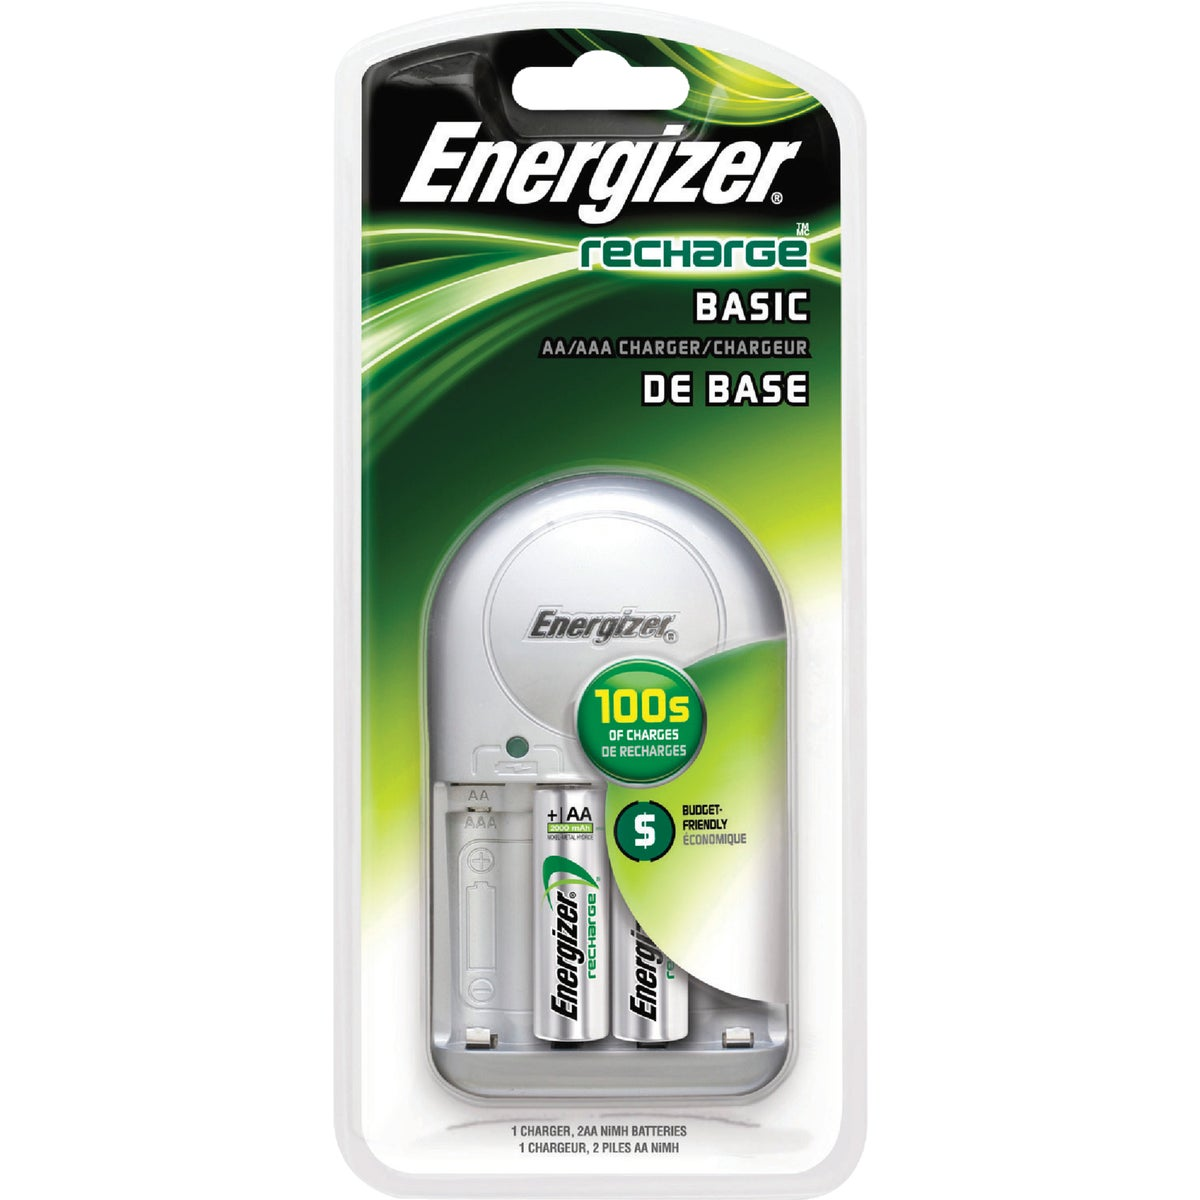 VALUE BATTERY CHARGER - CHVCWB2 by Energizer